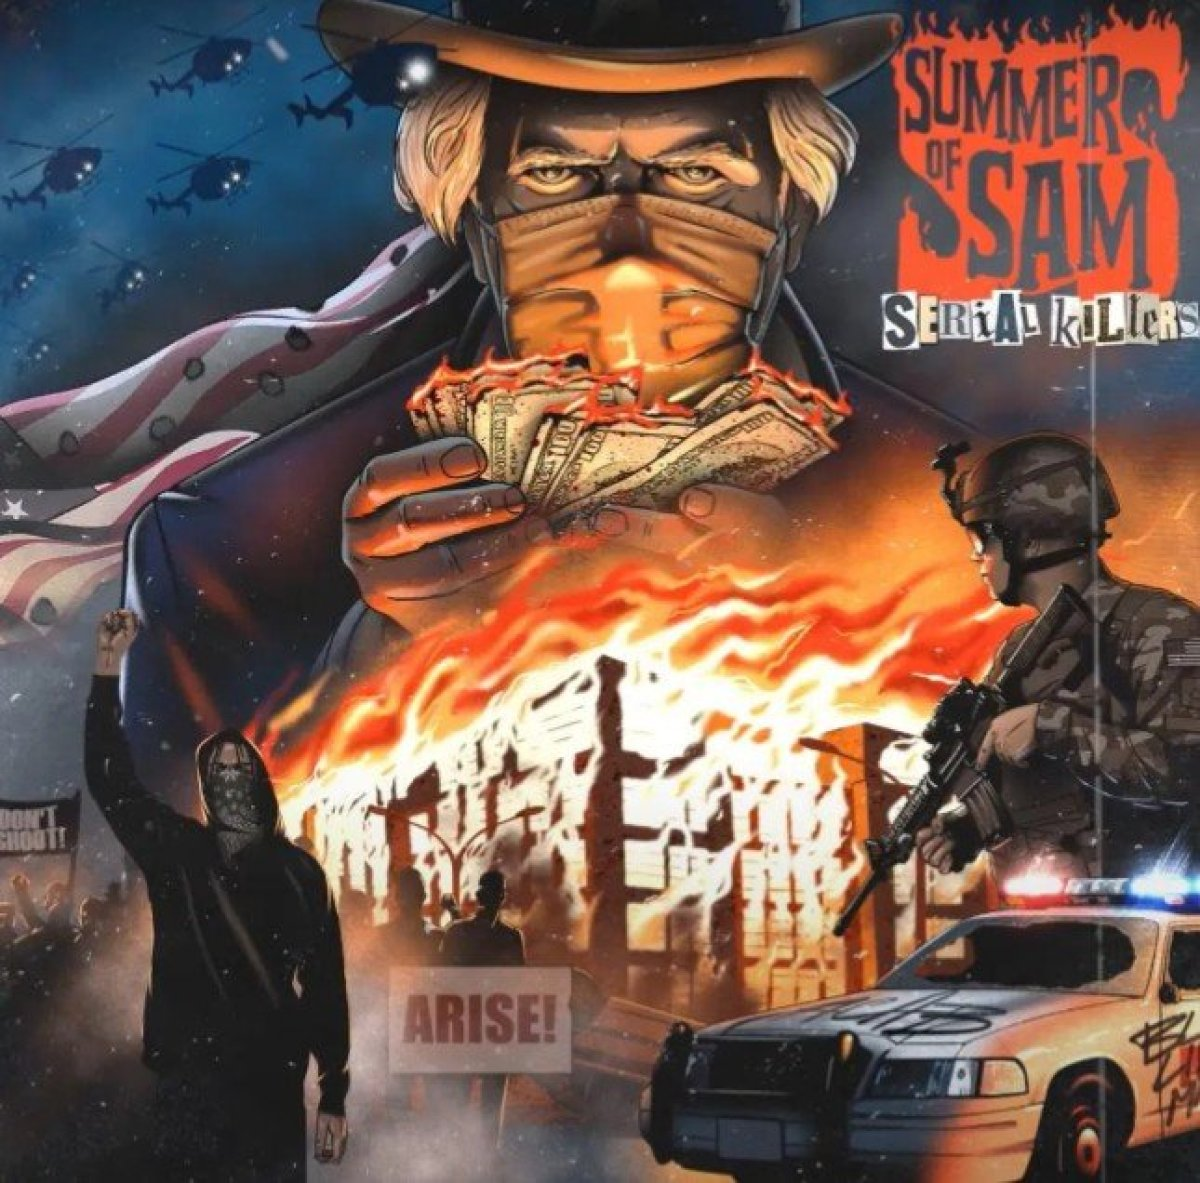 XZIBIT Ft. B-REAL & DEMRICK (SERIAL KILLERS) – S.O.S. MP3 DOWNLOAD FREE